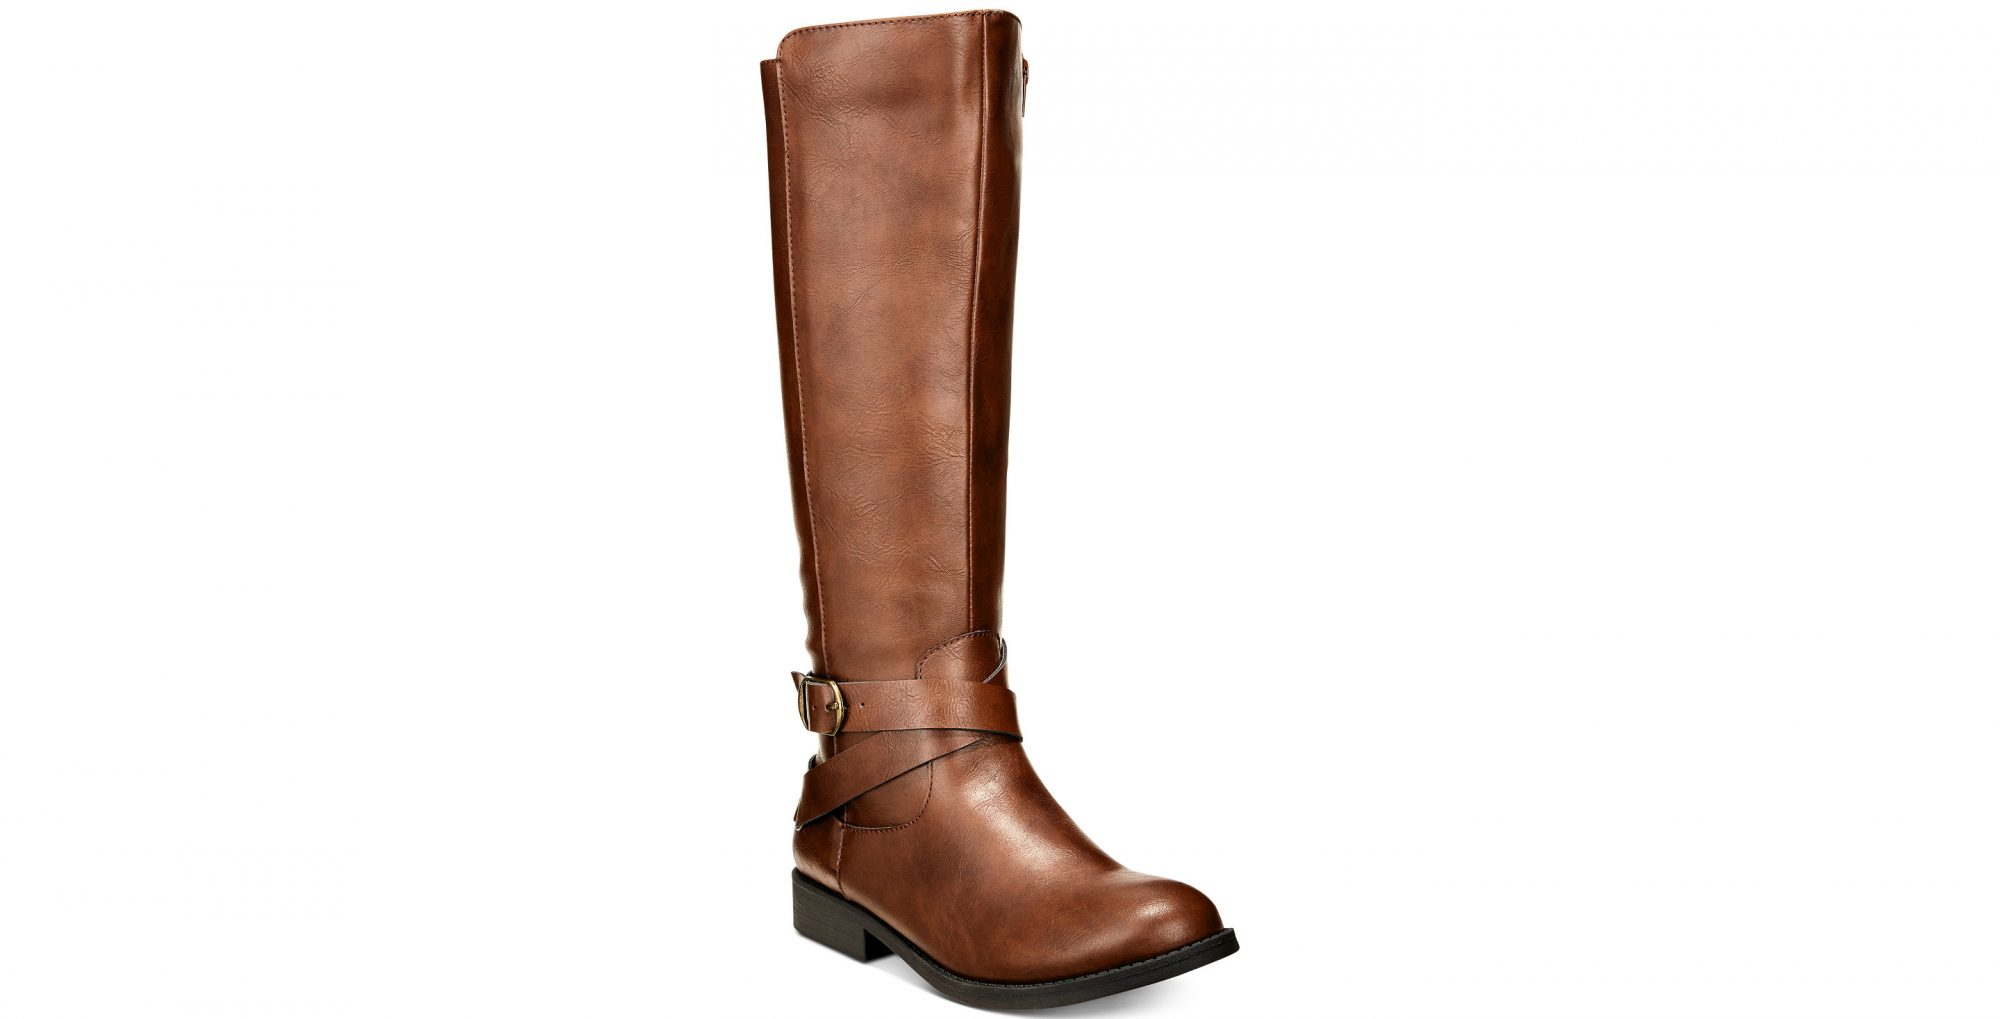 Madixe Riding Boots